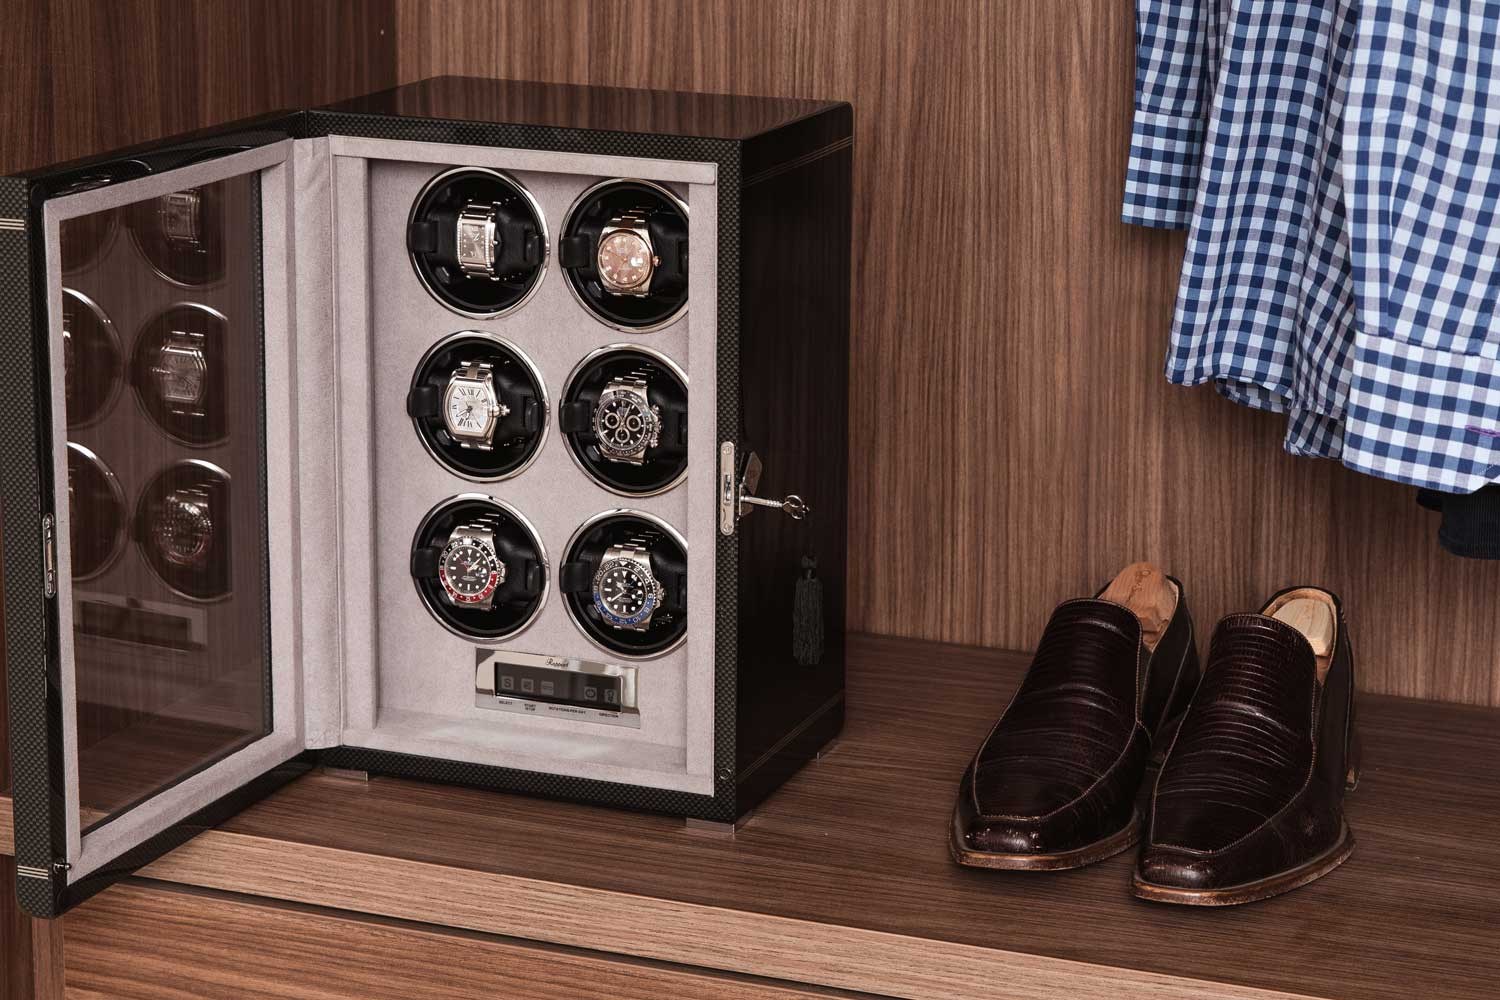 The Formula Six Watch Winder